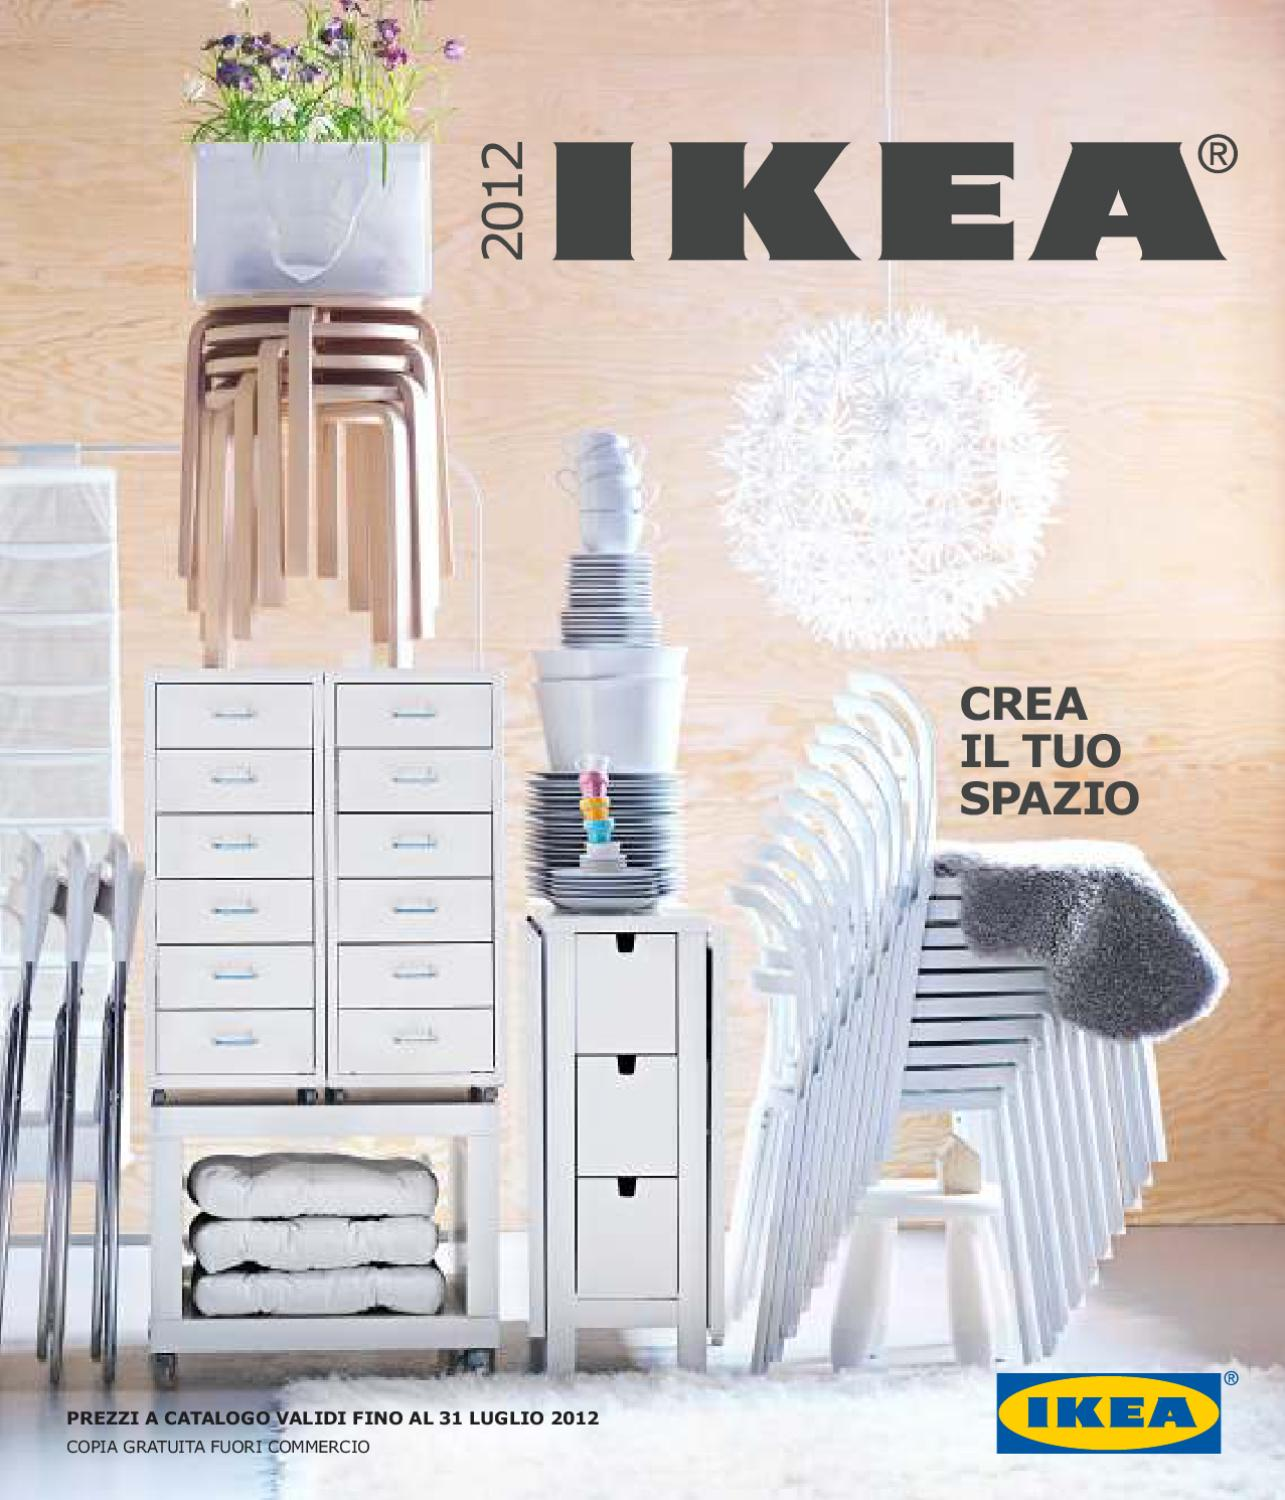 Catalogo ikea italia 2012 by issuu - Catalogo ikea 2015 italia ...